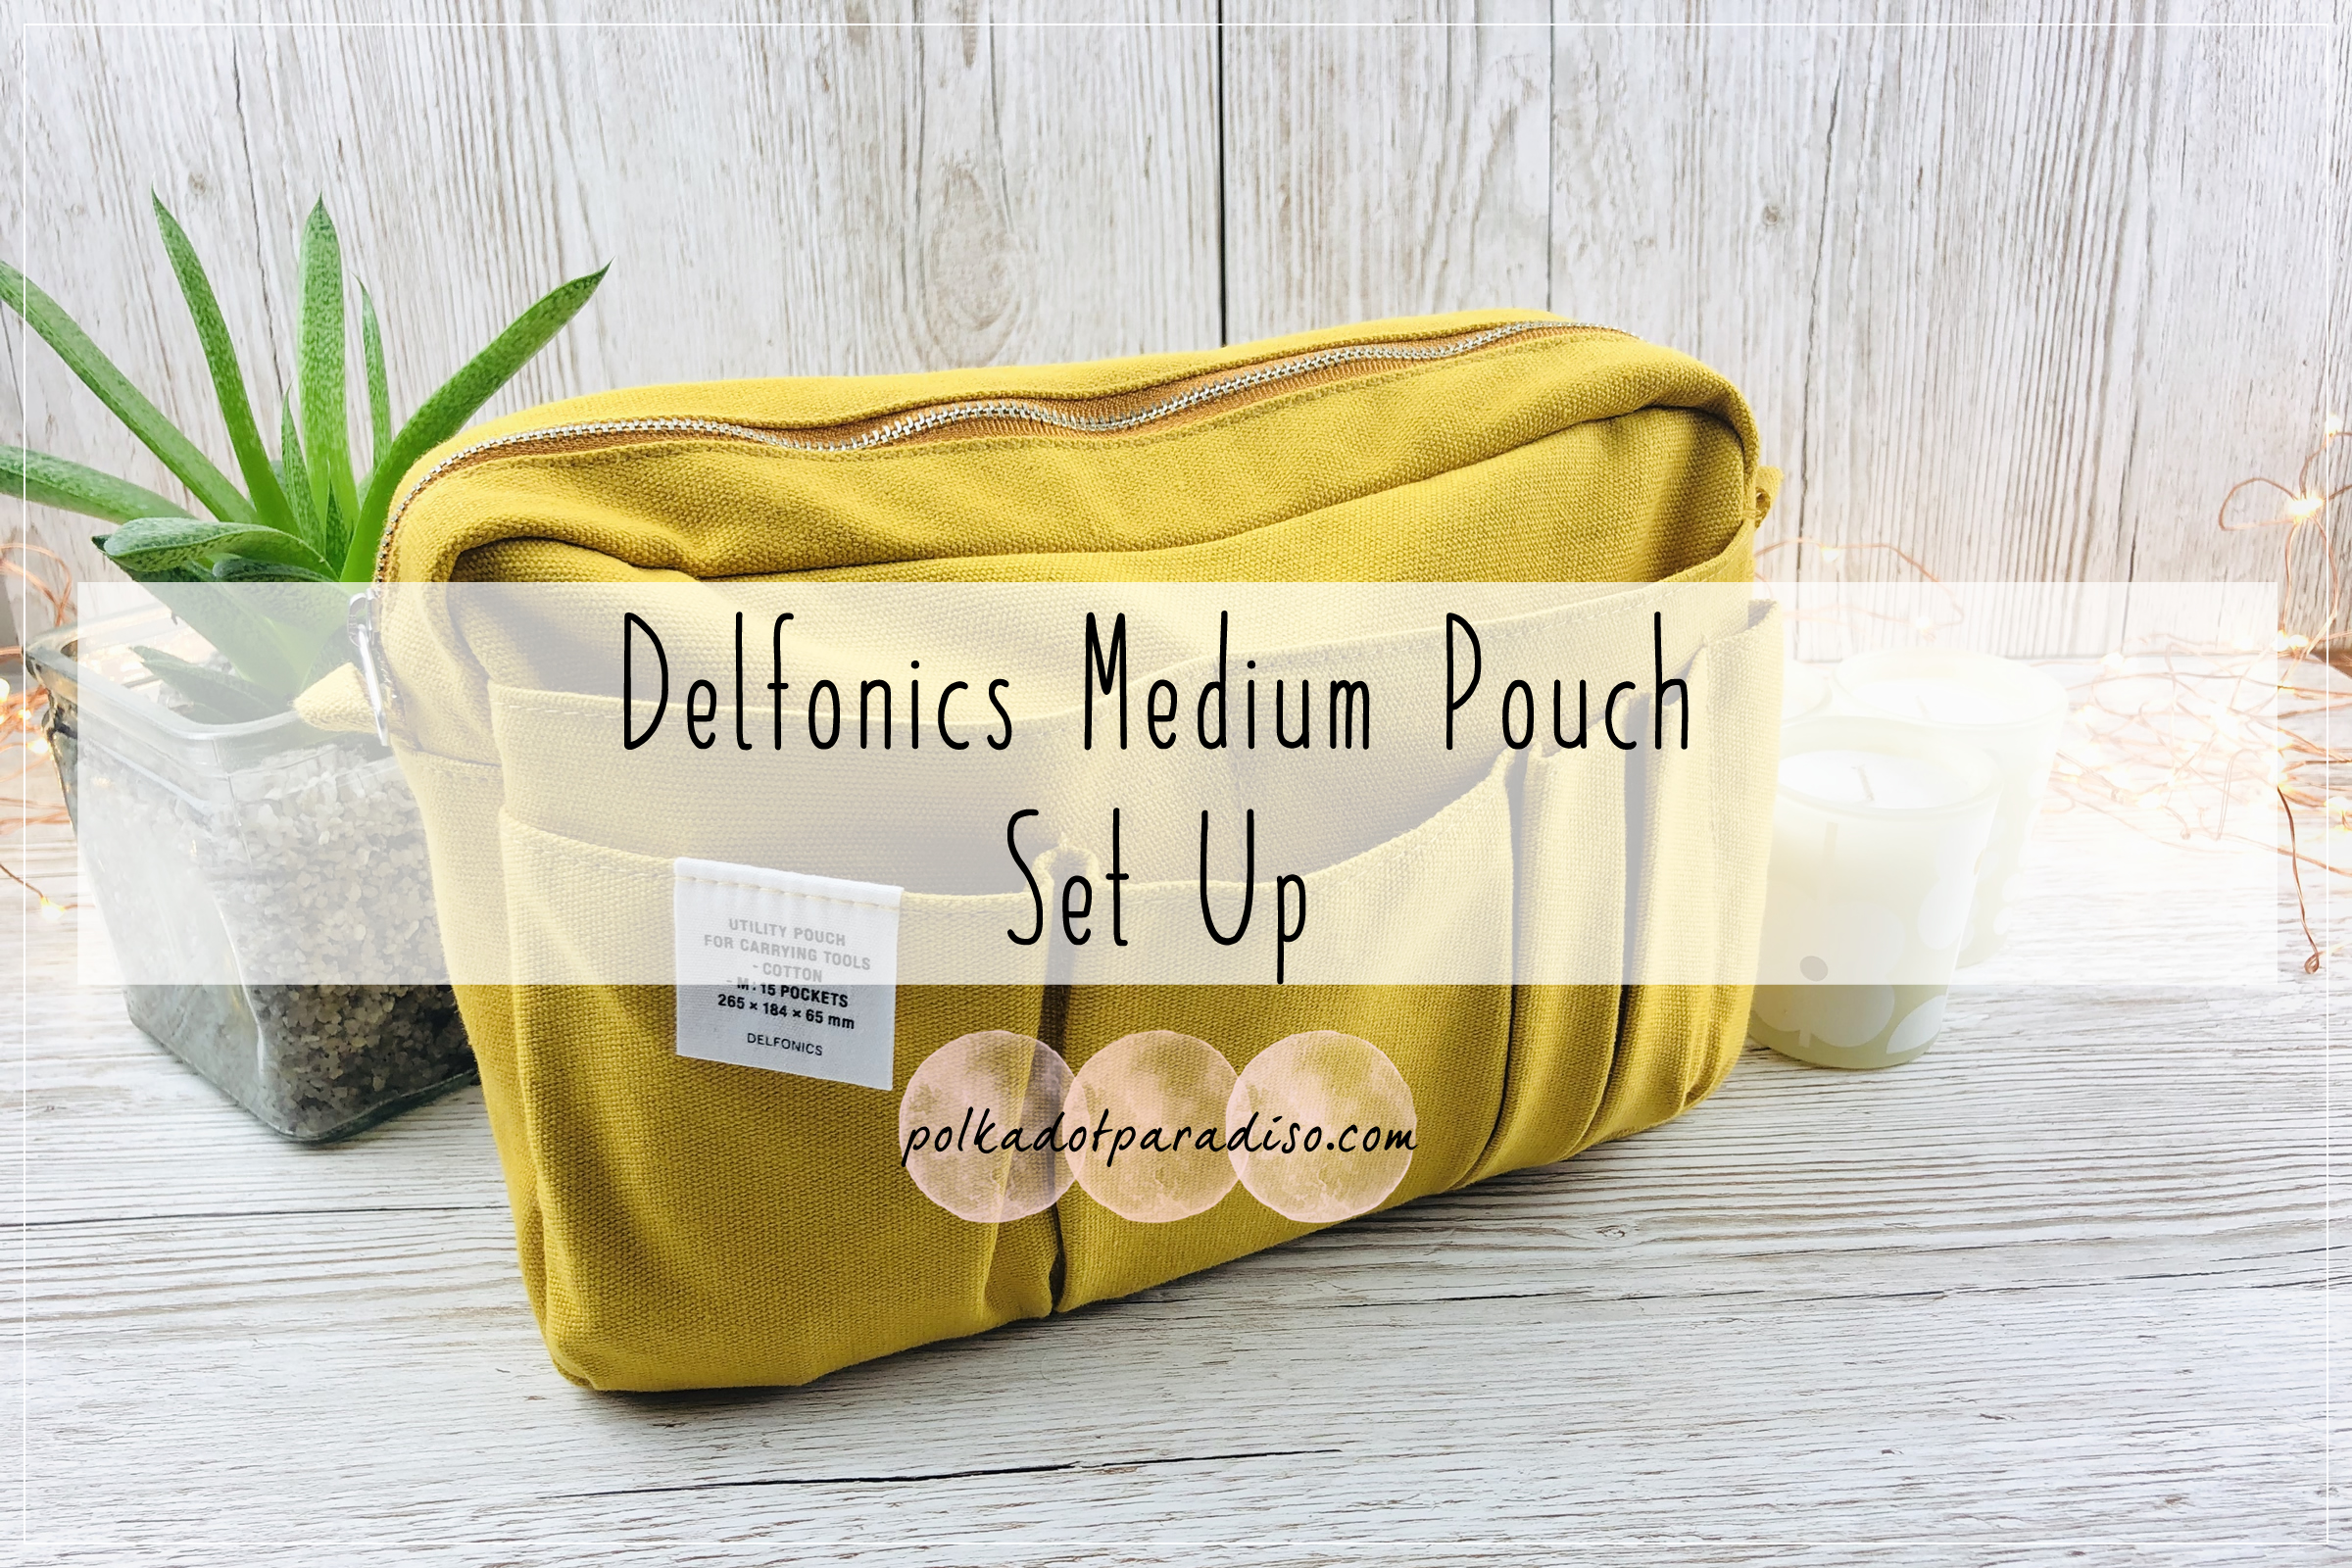 Delfonics Medium Pouch Set Up » Polkadotparadiso